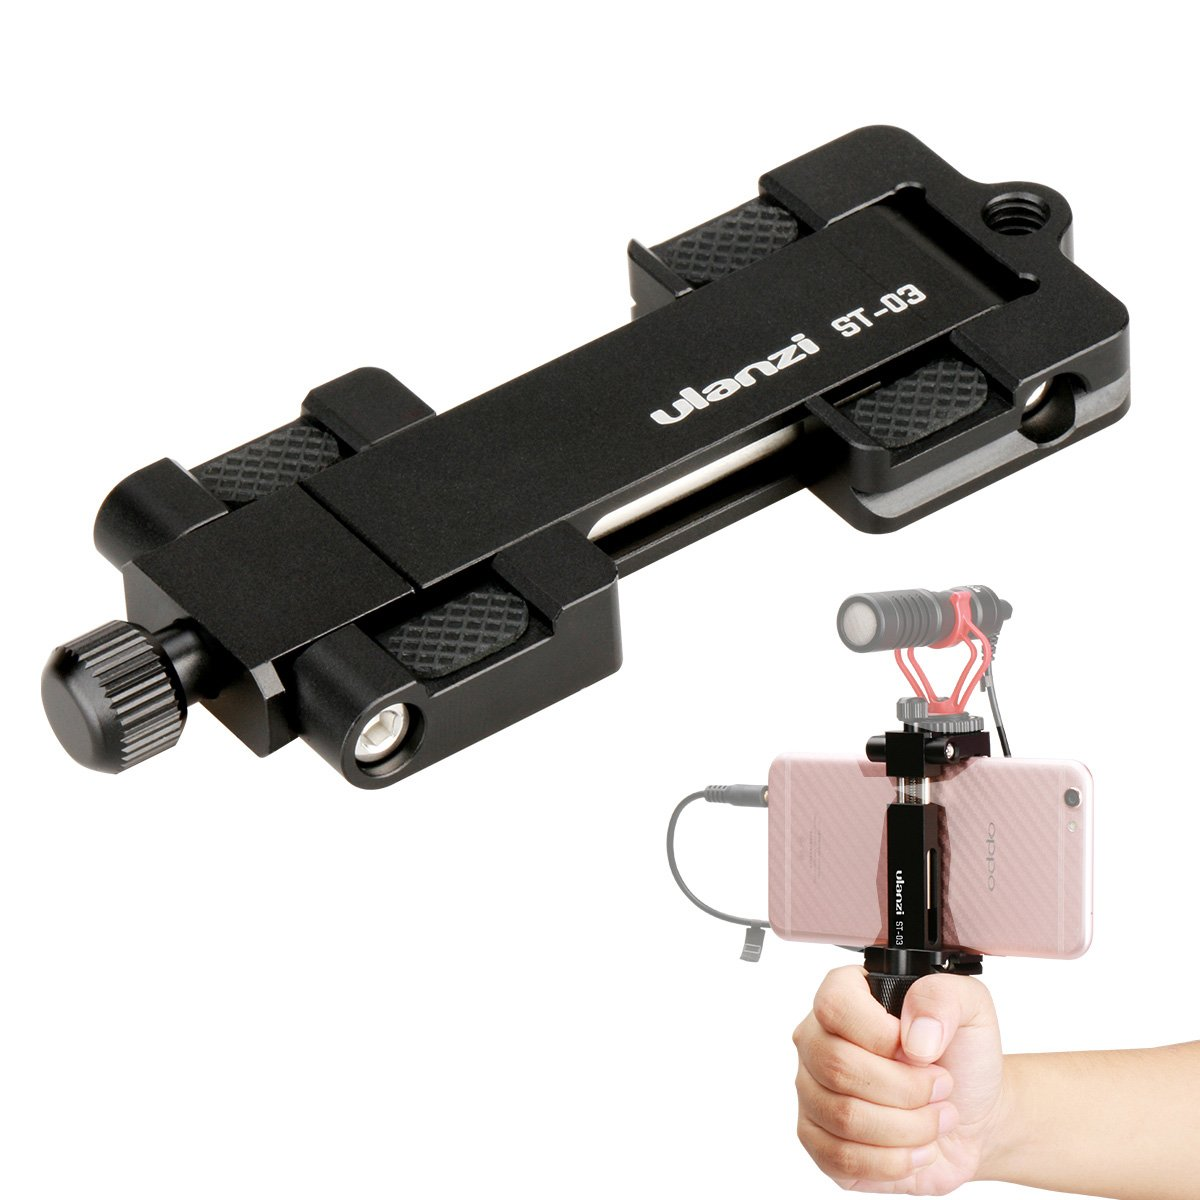 Ulanzi ST-02S Metal Smartphone Tripod Mount Adapter with Cold Shoe Mount